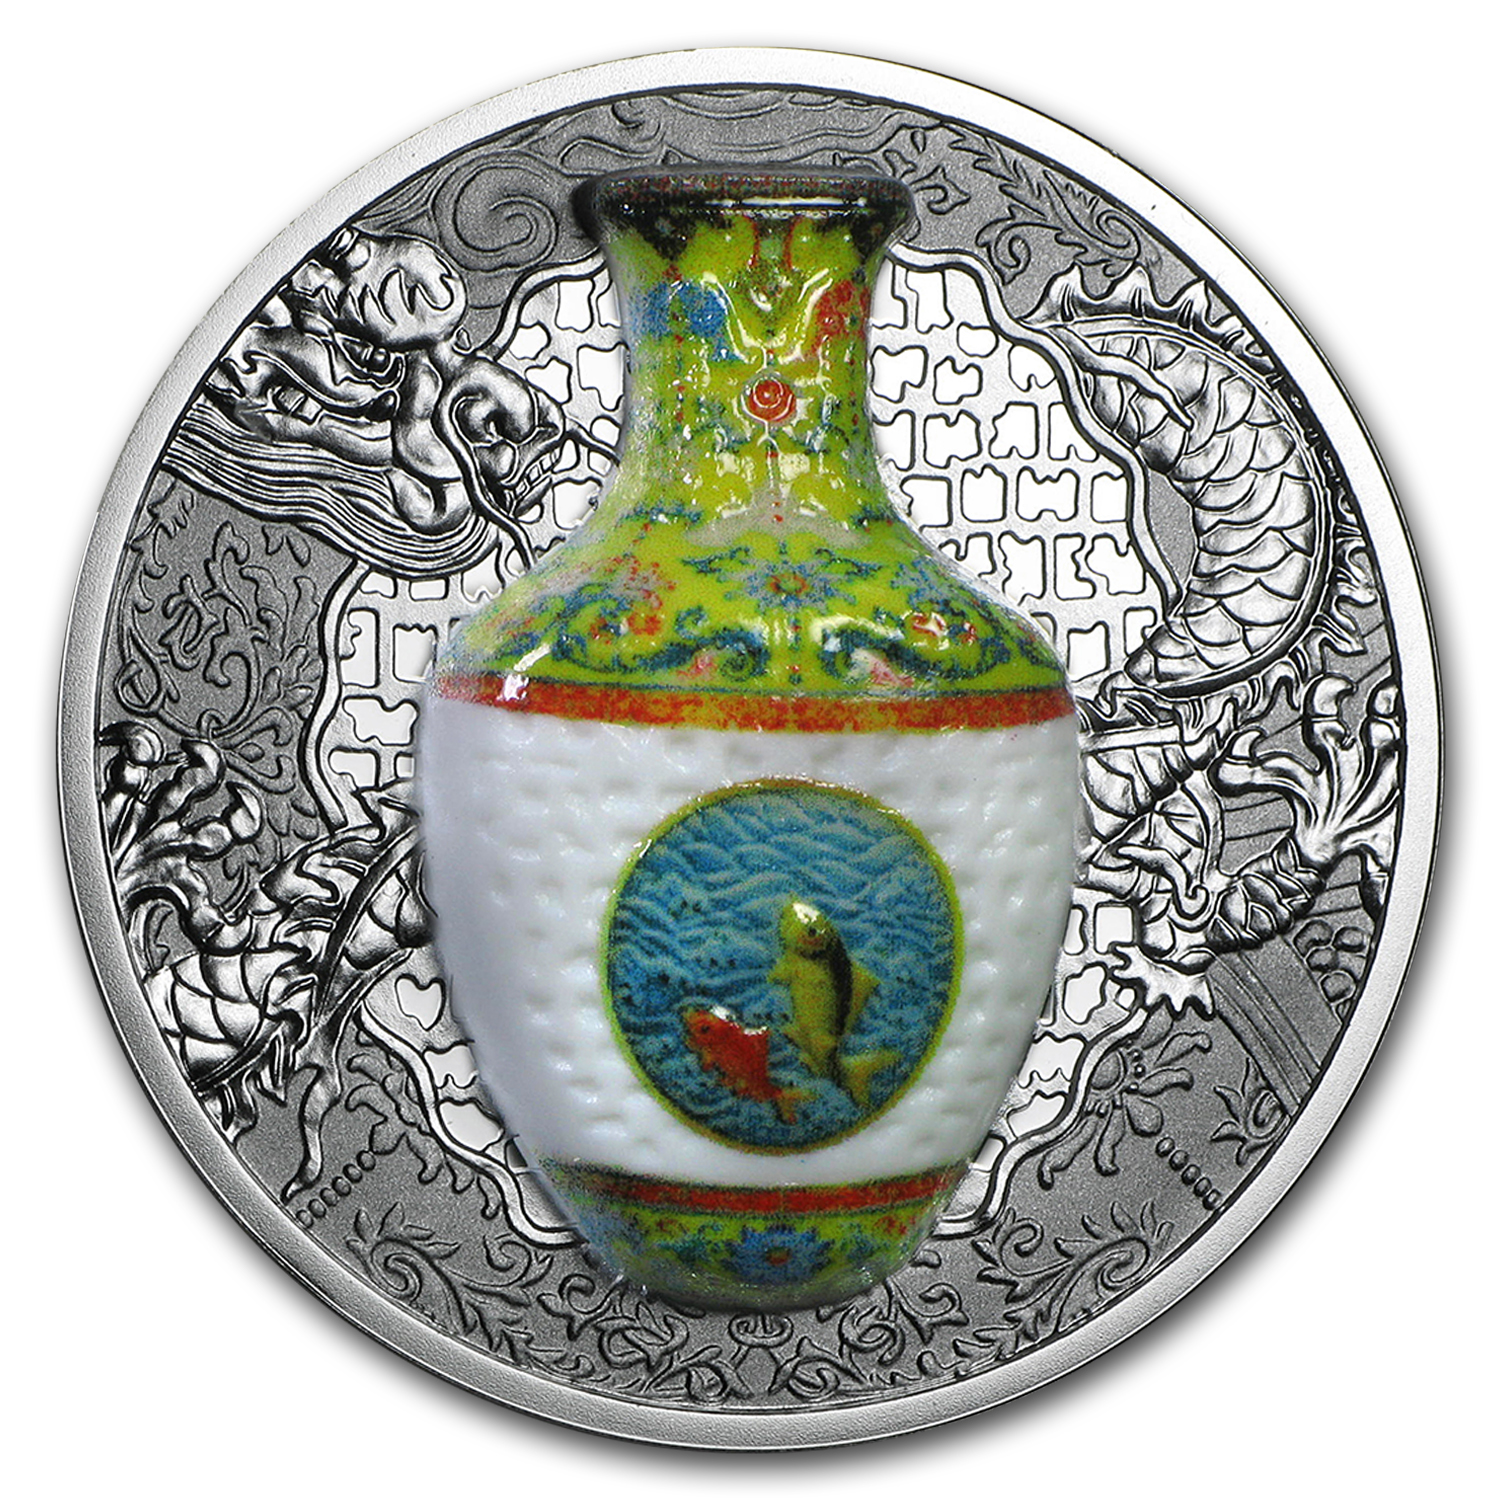 2016 Niue 1 oz Silver Qing Dynasty Chinese Porcelain Vase